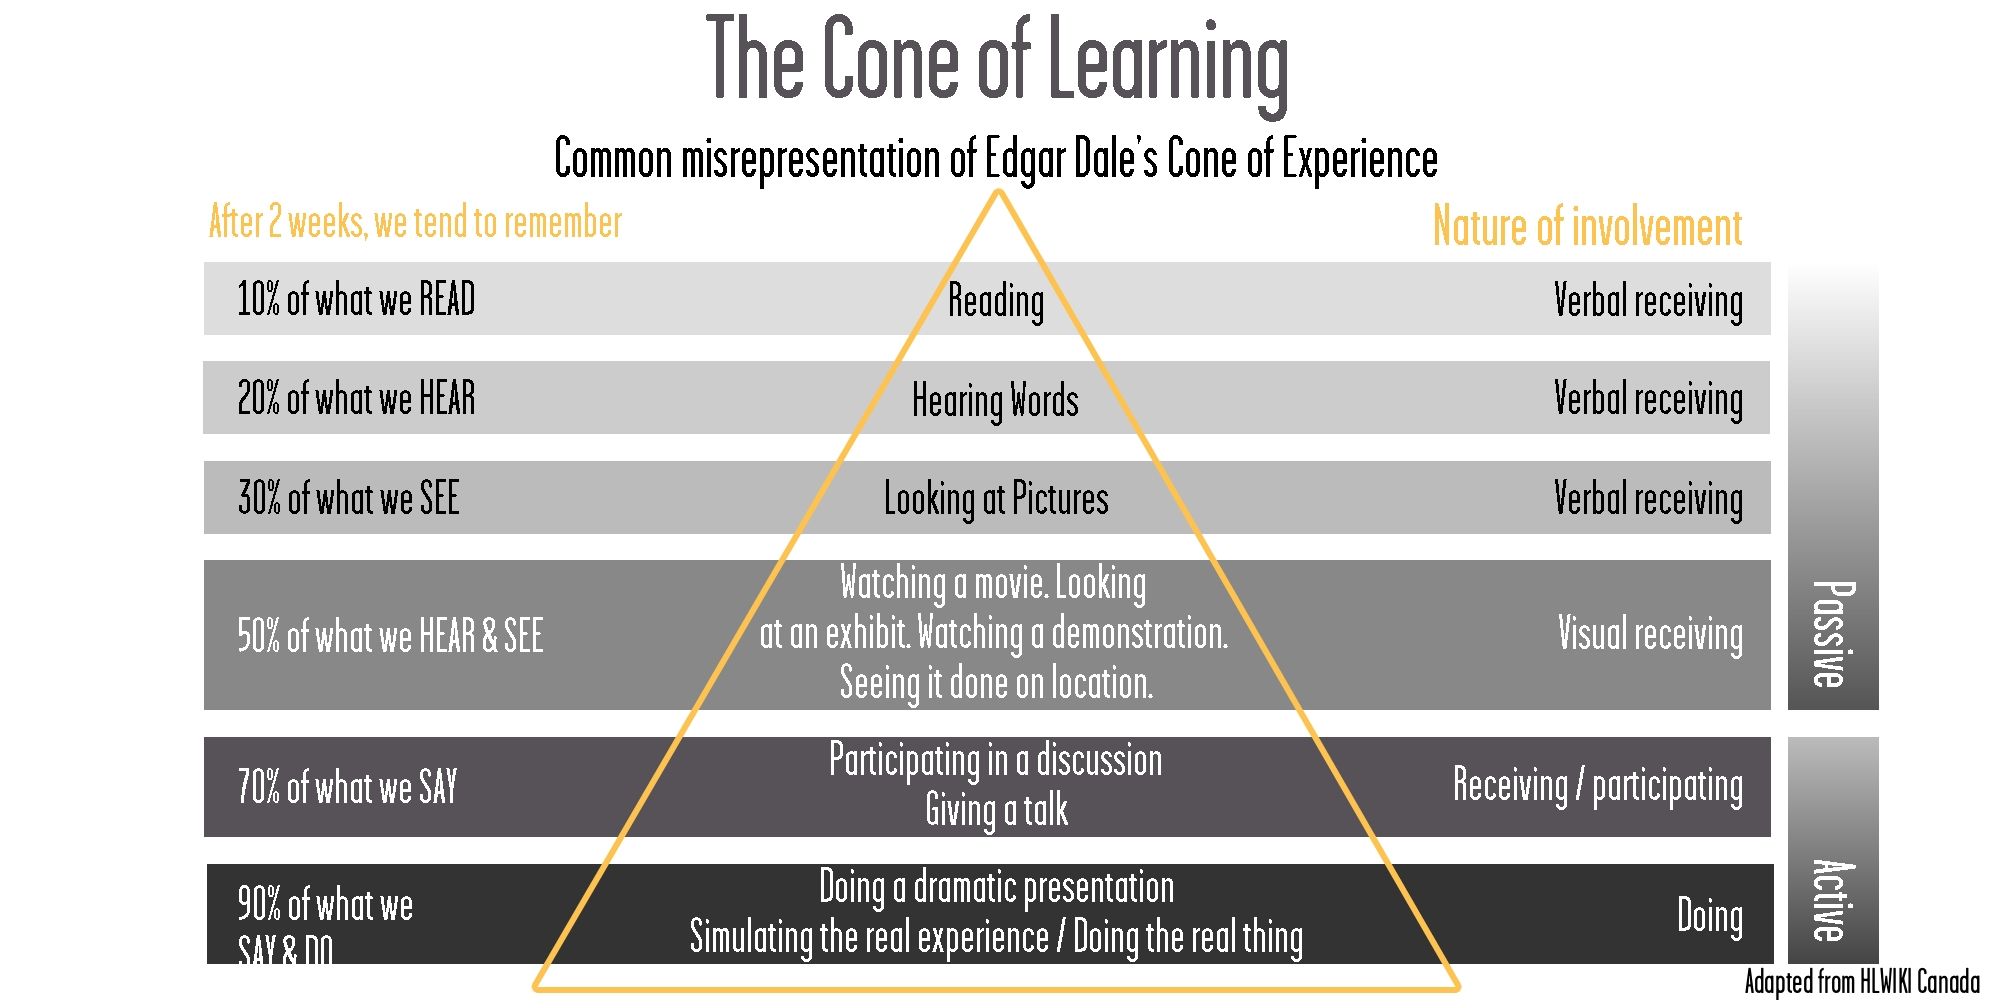 Leveraged Learning - Cone of Learning